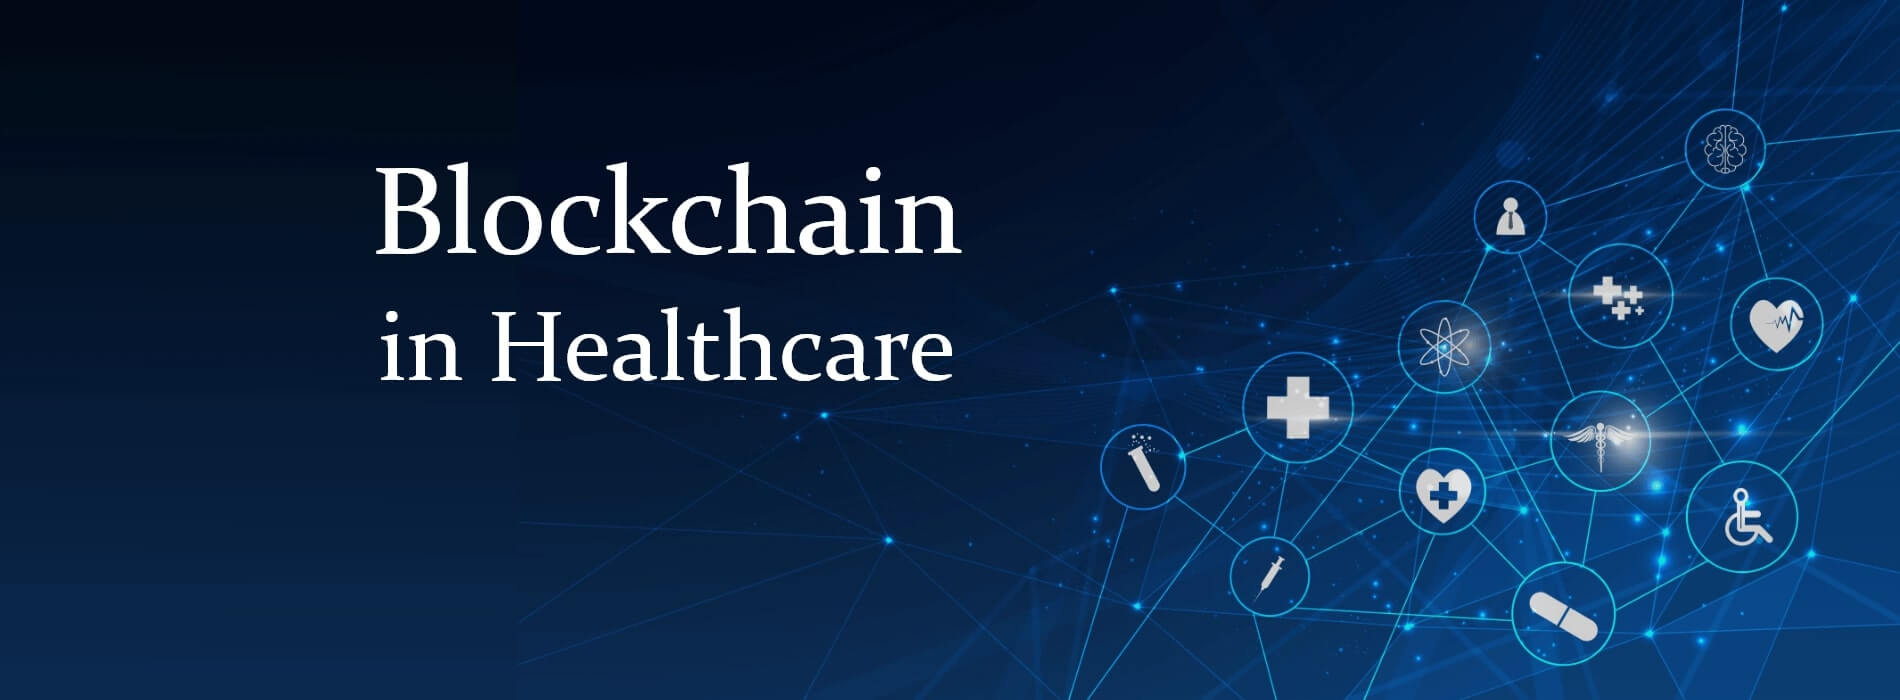 Blockchain Technology in Healthcare: Use cases, Benefits & Challenges Unlocked